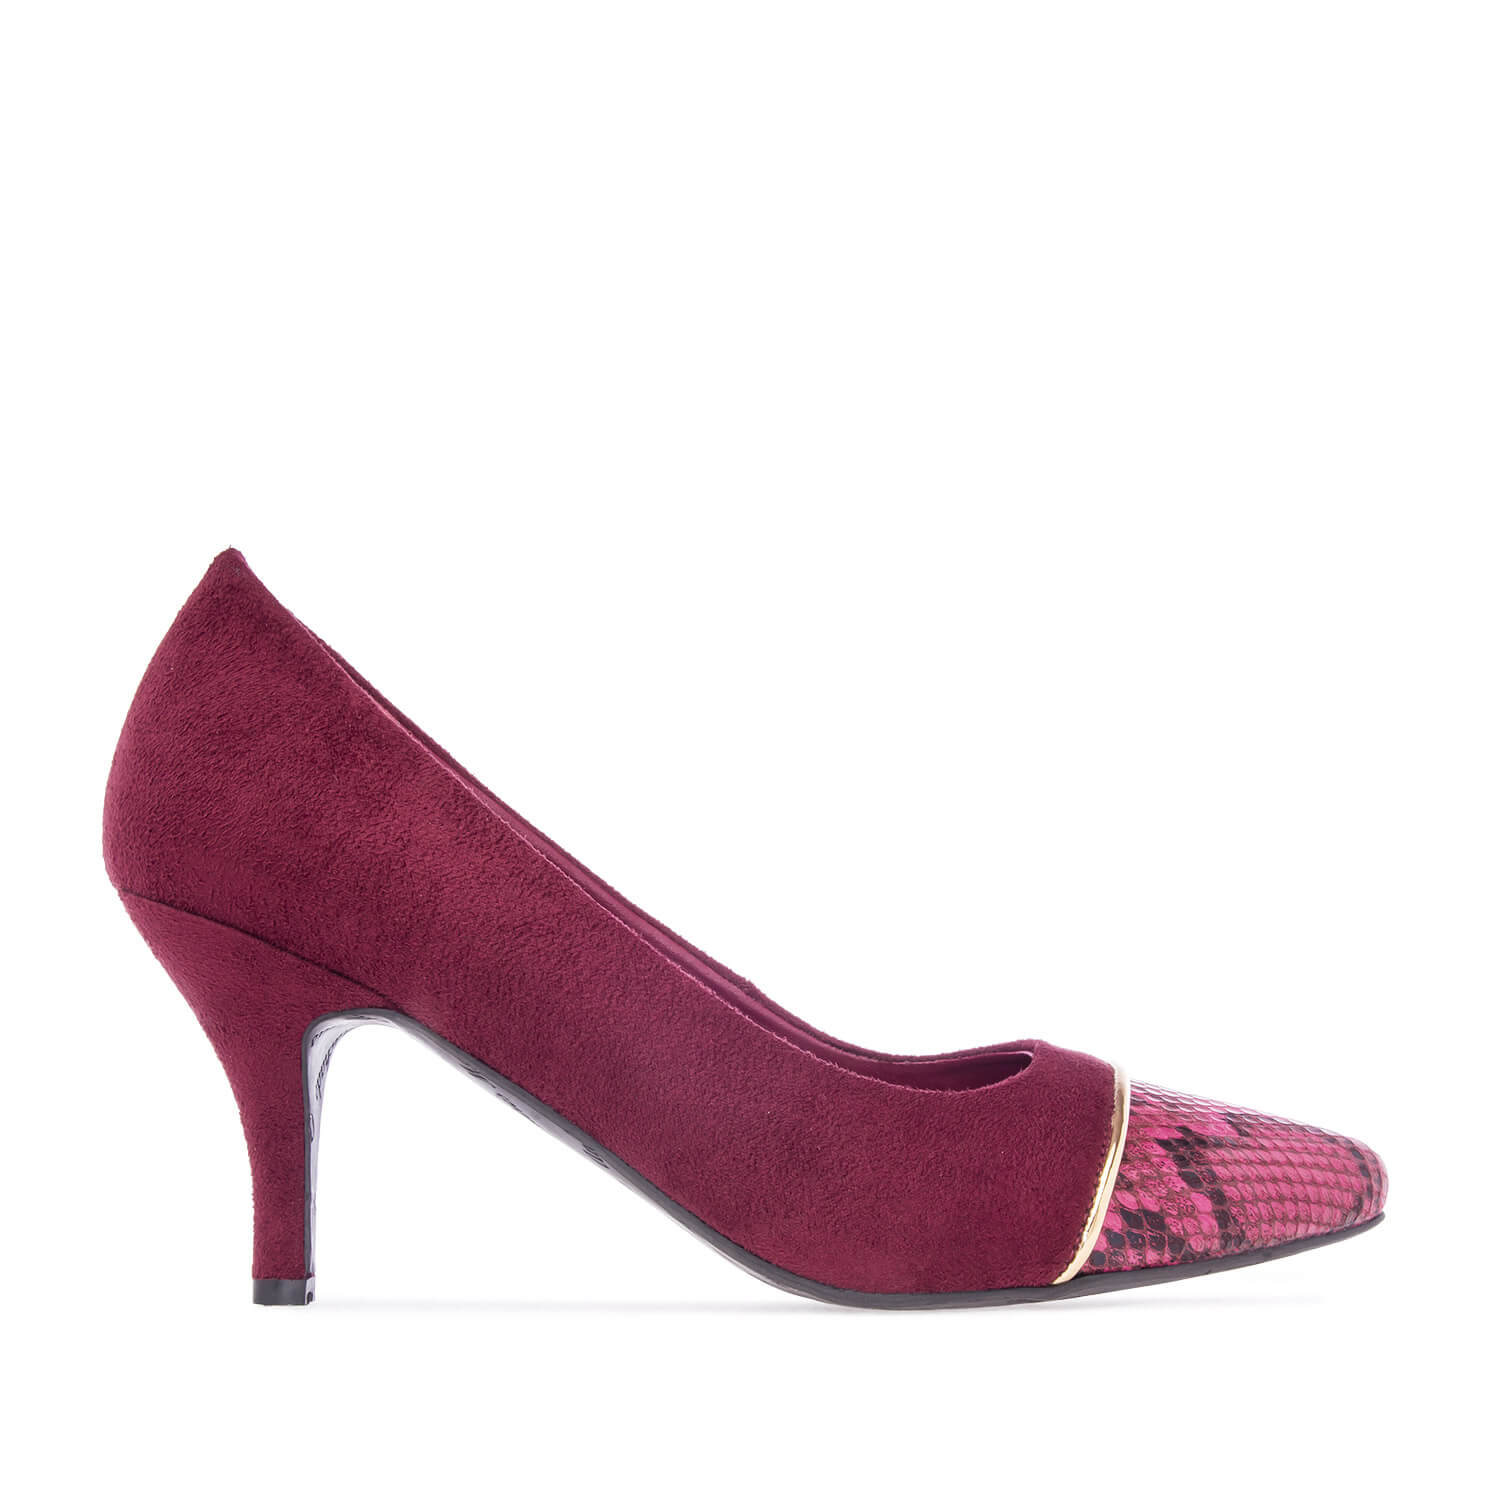 Pumps in Burgundy faux Suede